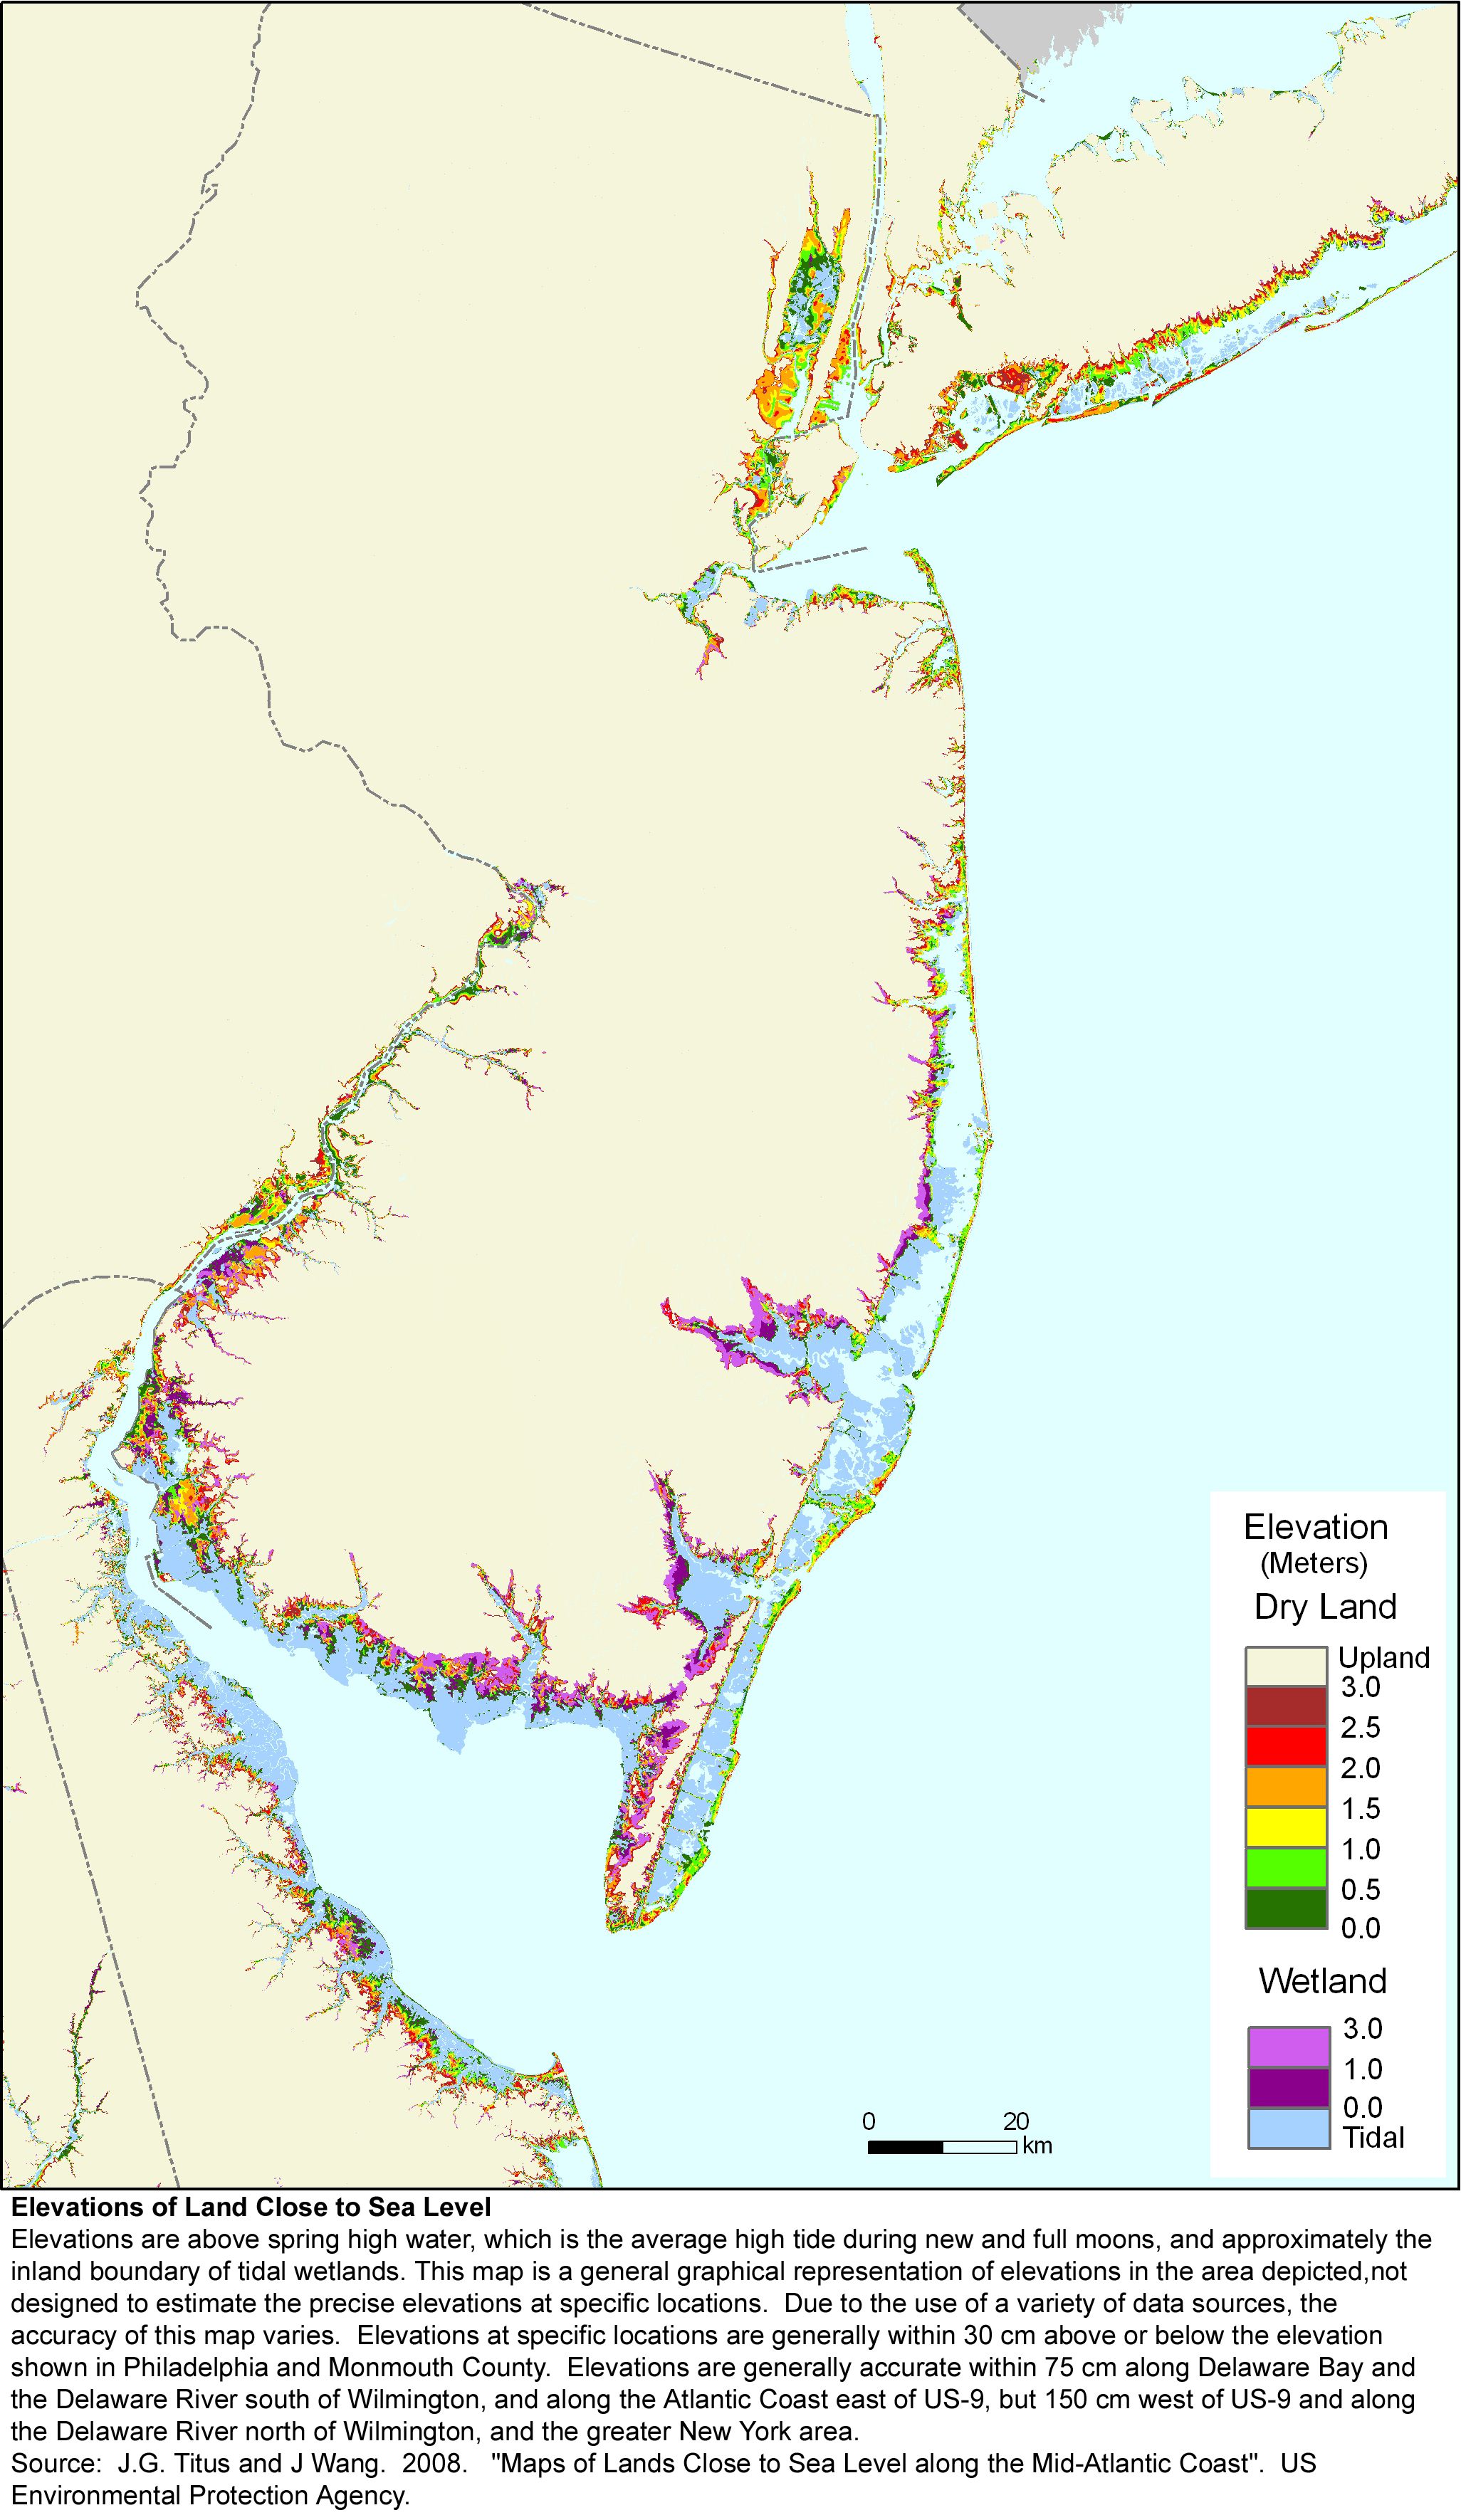 Nj Wetlands Map More Sea Level Rise Planning Maps: Likelihood of Shore Protection